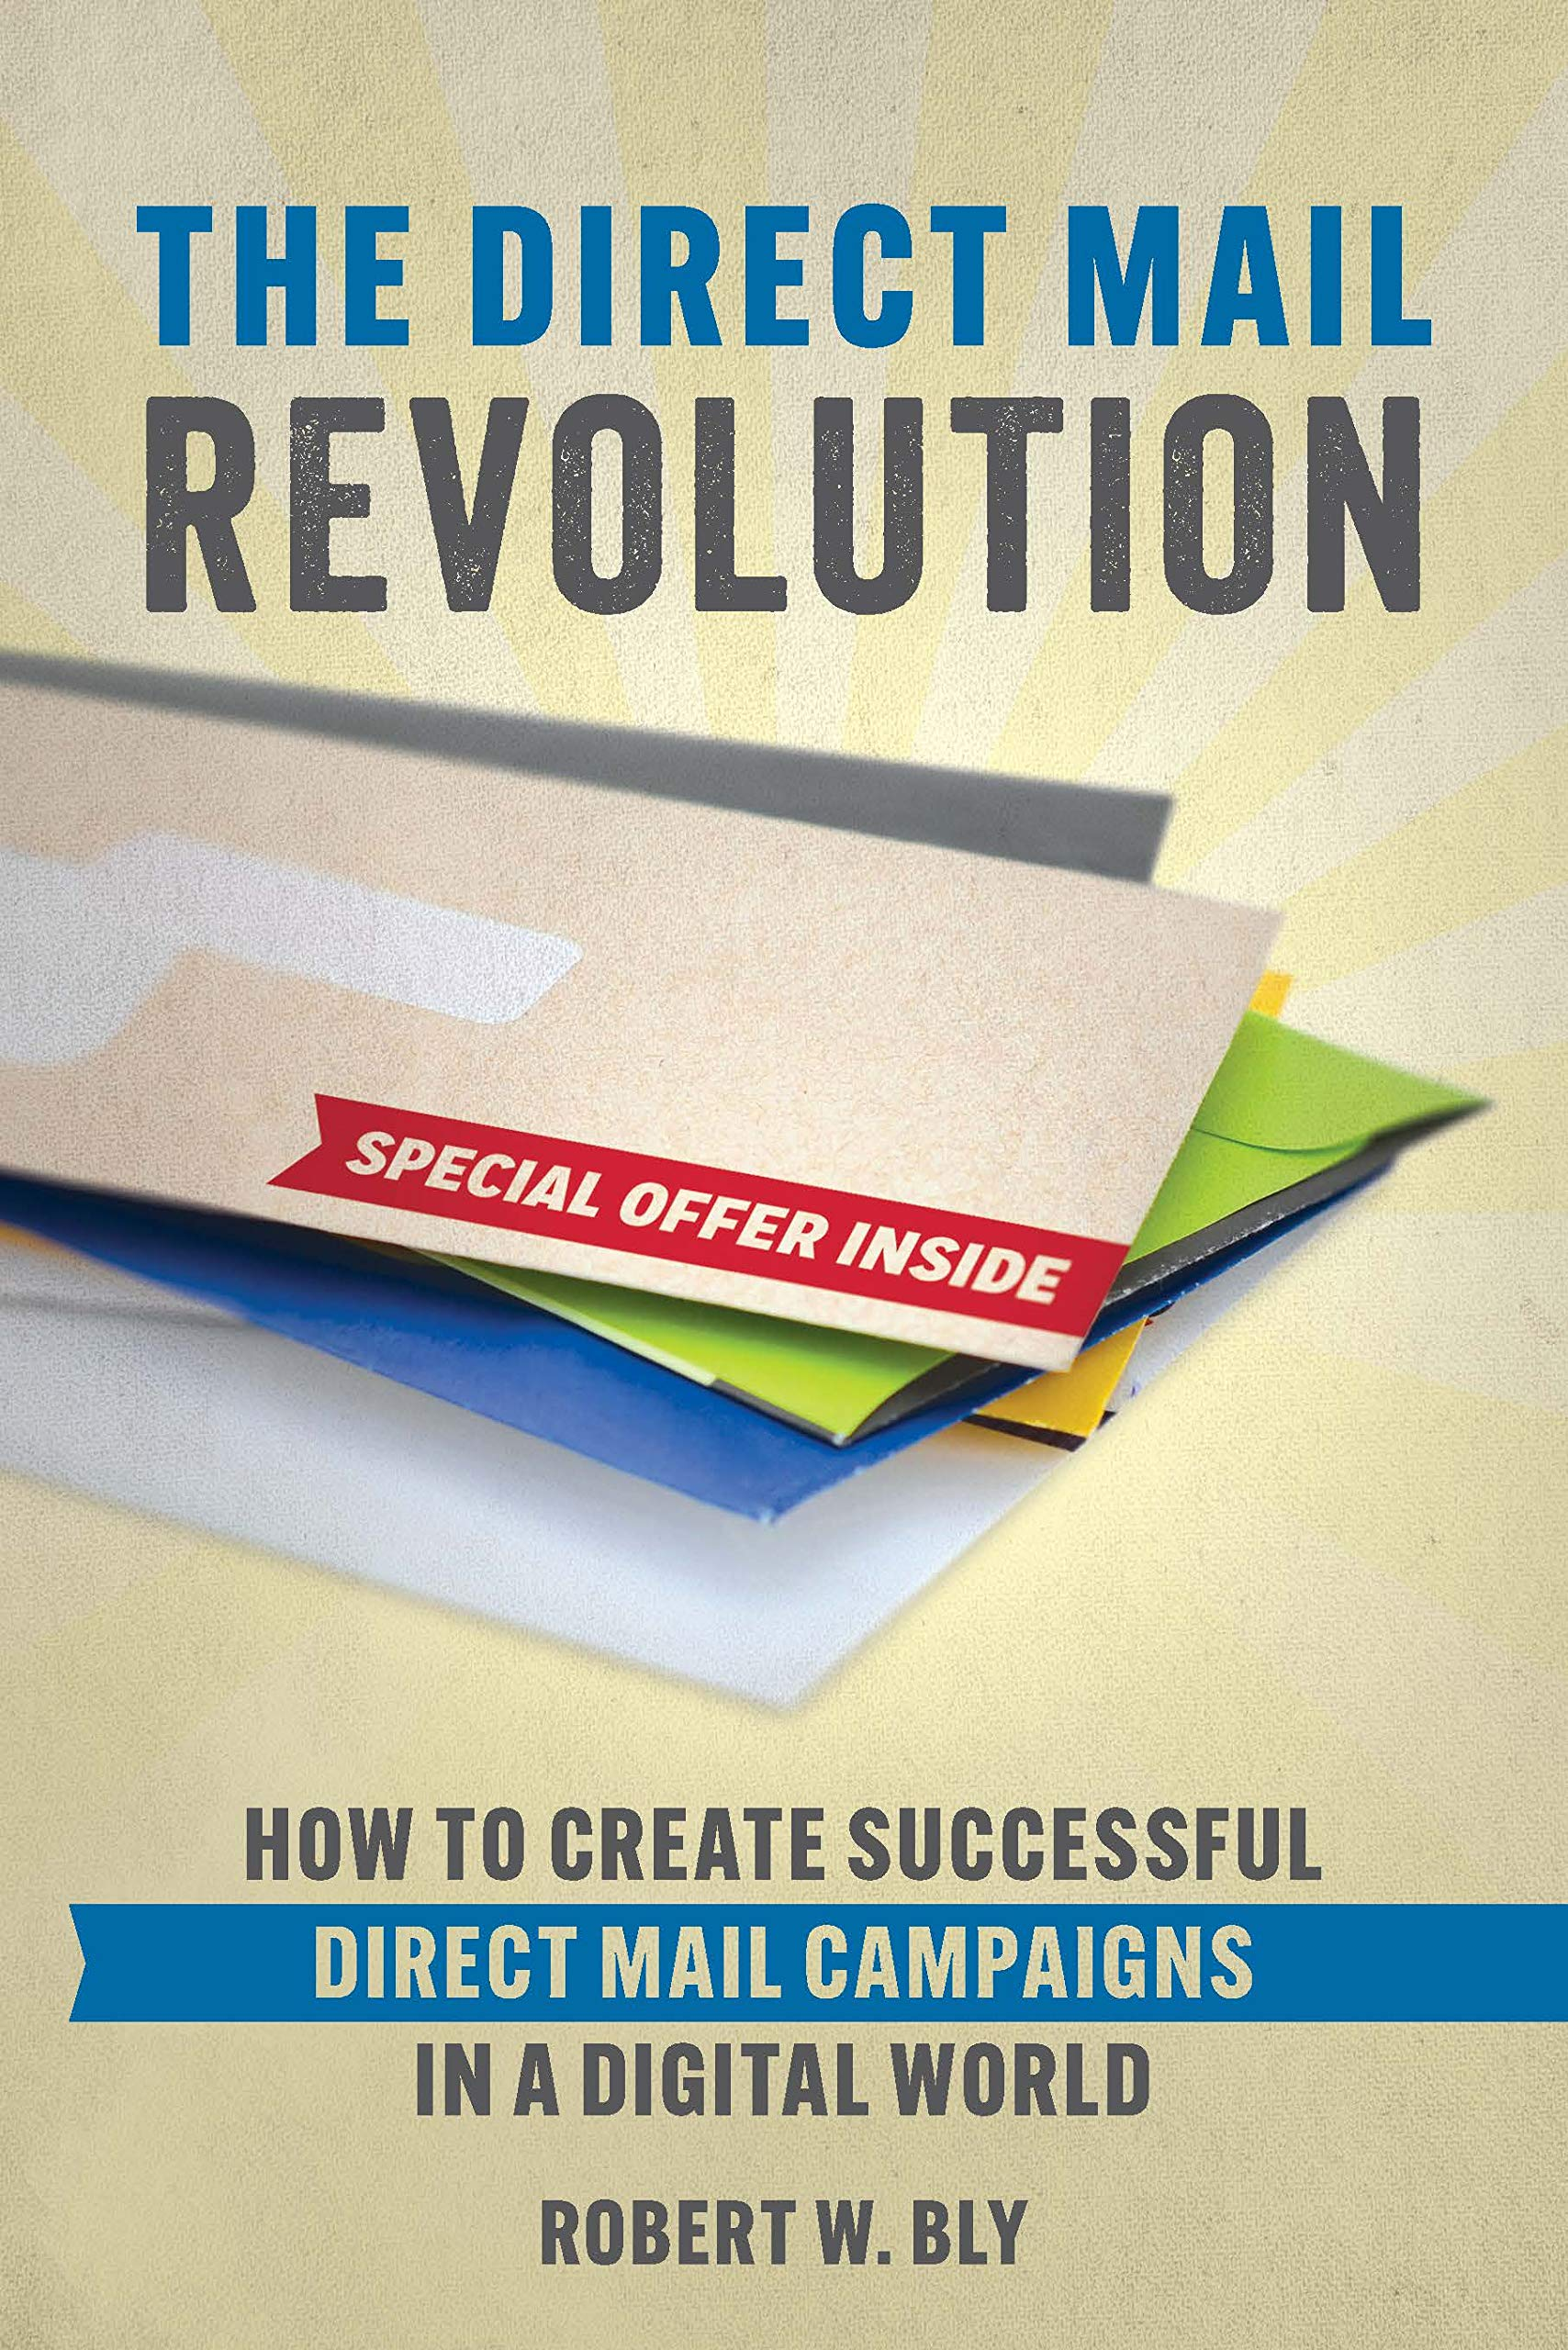 amazon the direct mail revolution how to create profitable direct